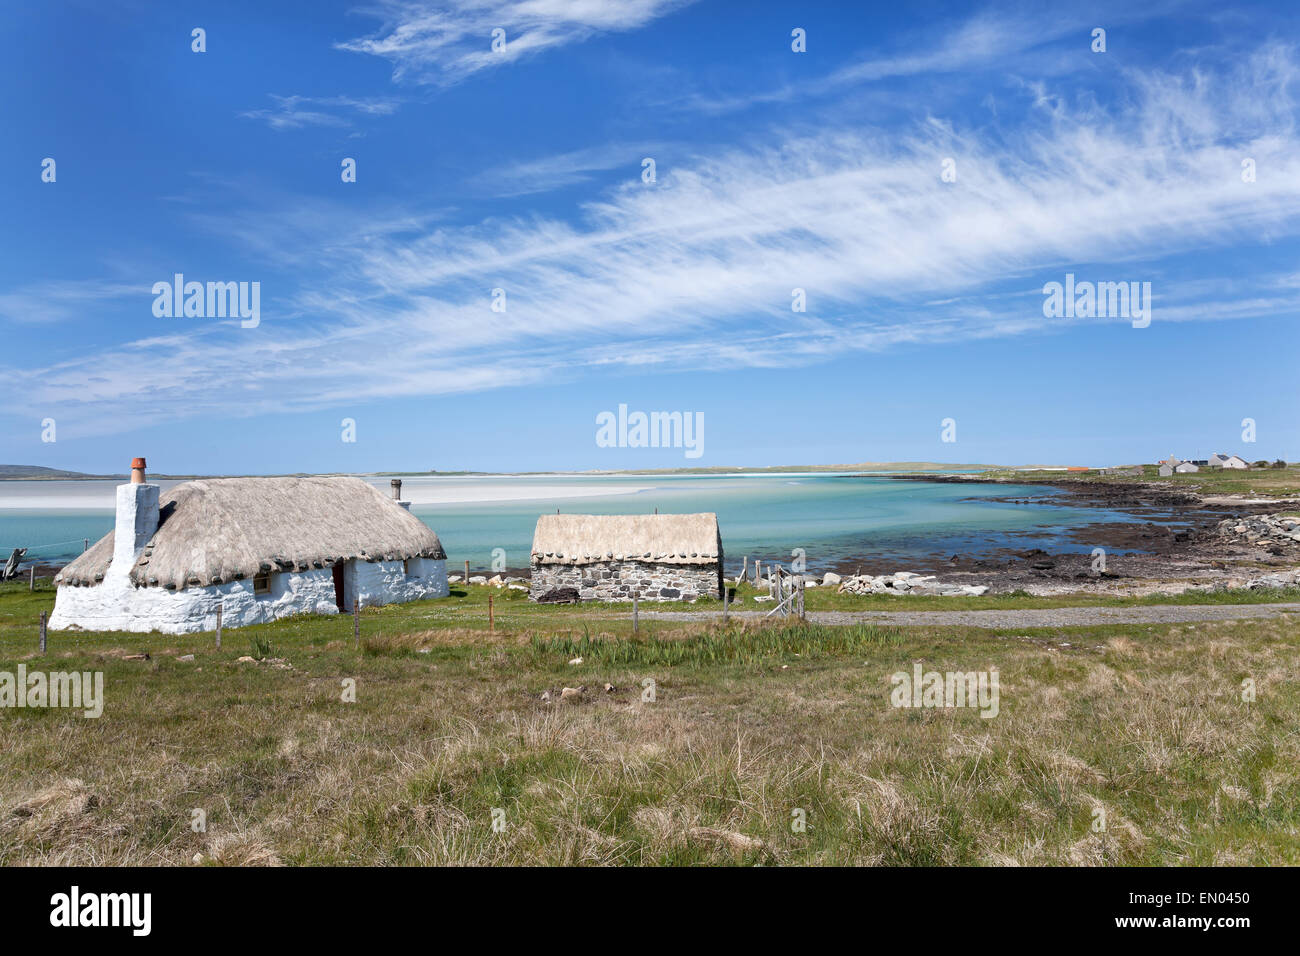 Croft house overlooking the sea, Western Isles of Scotland - Stock Image